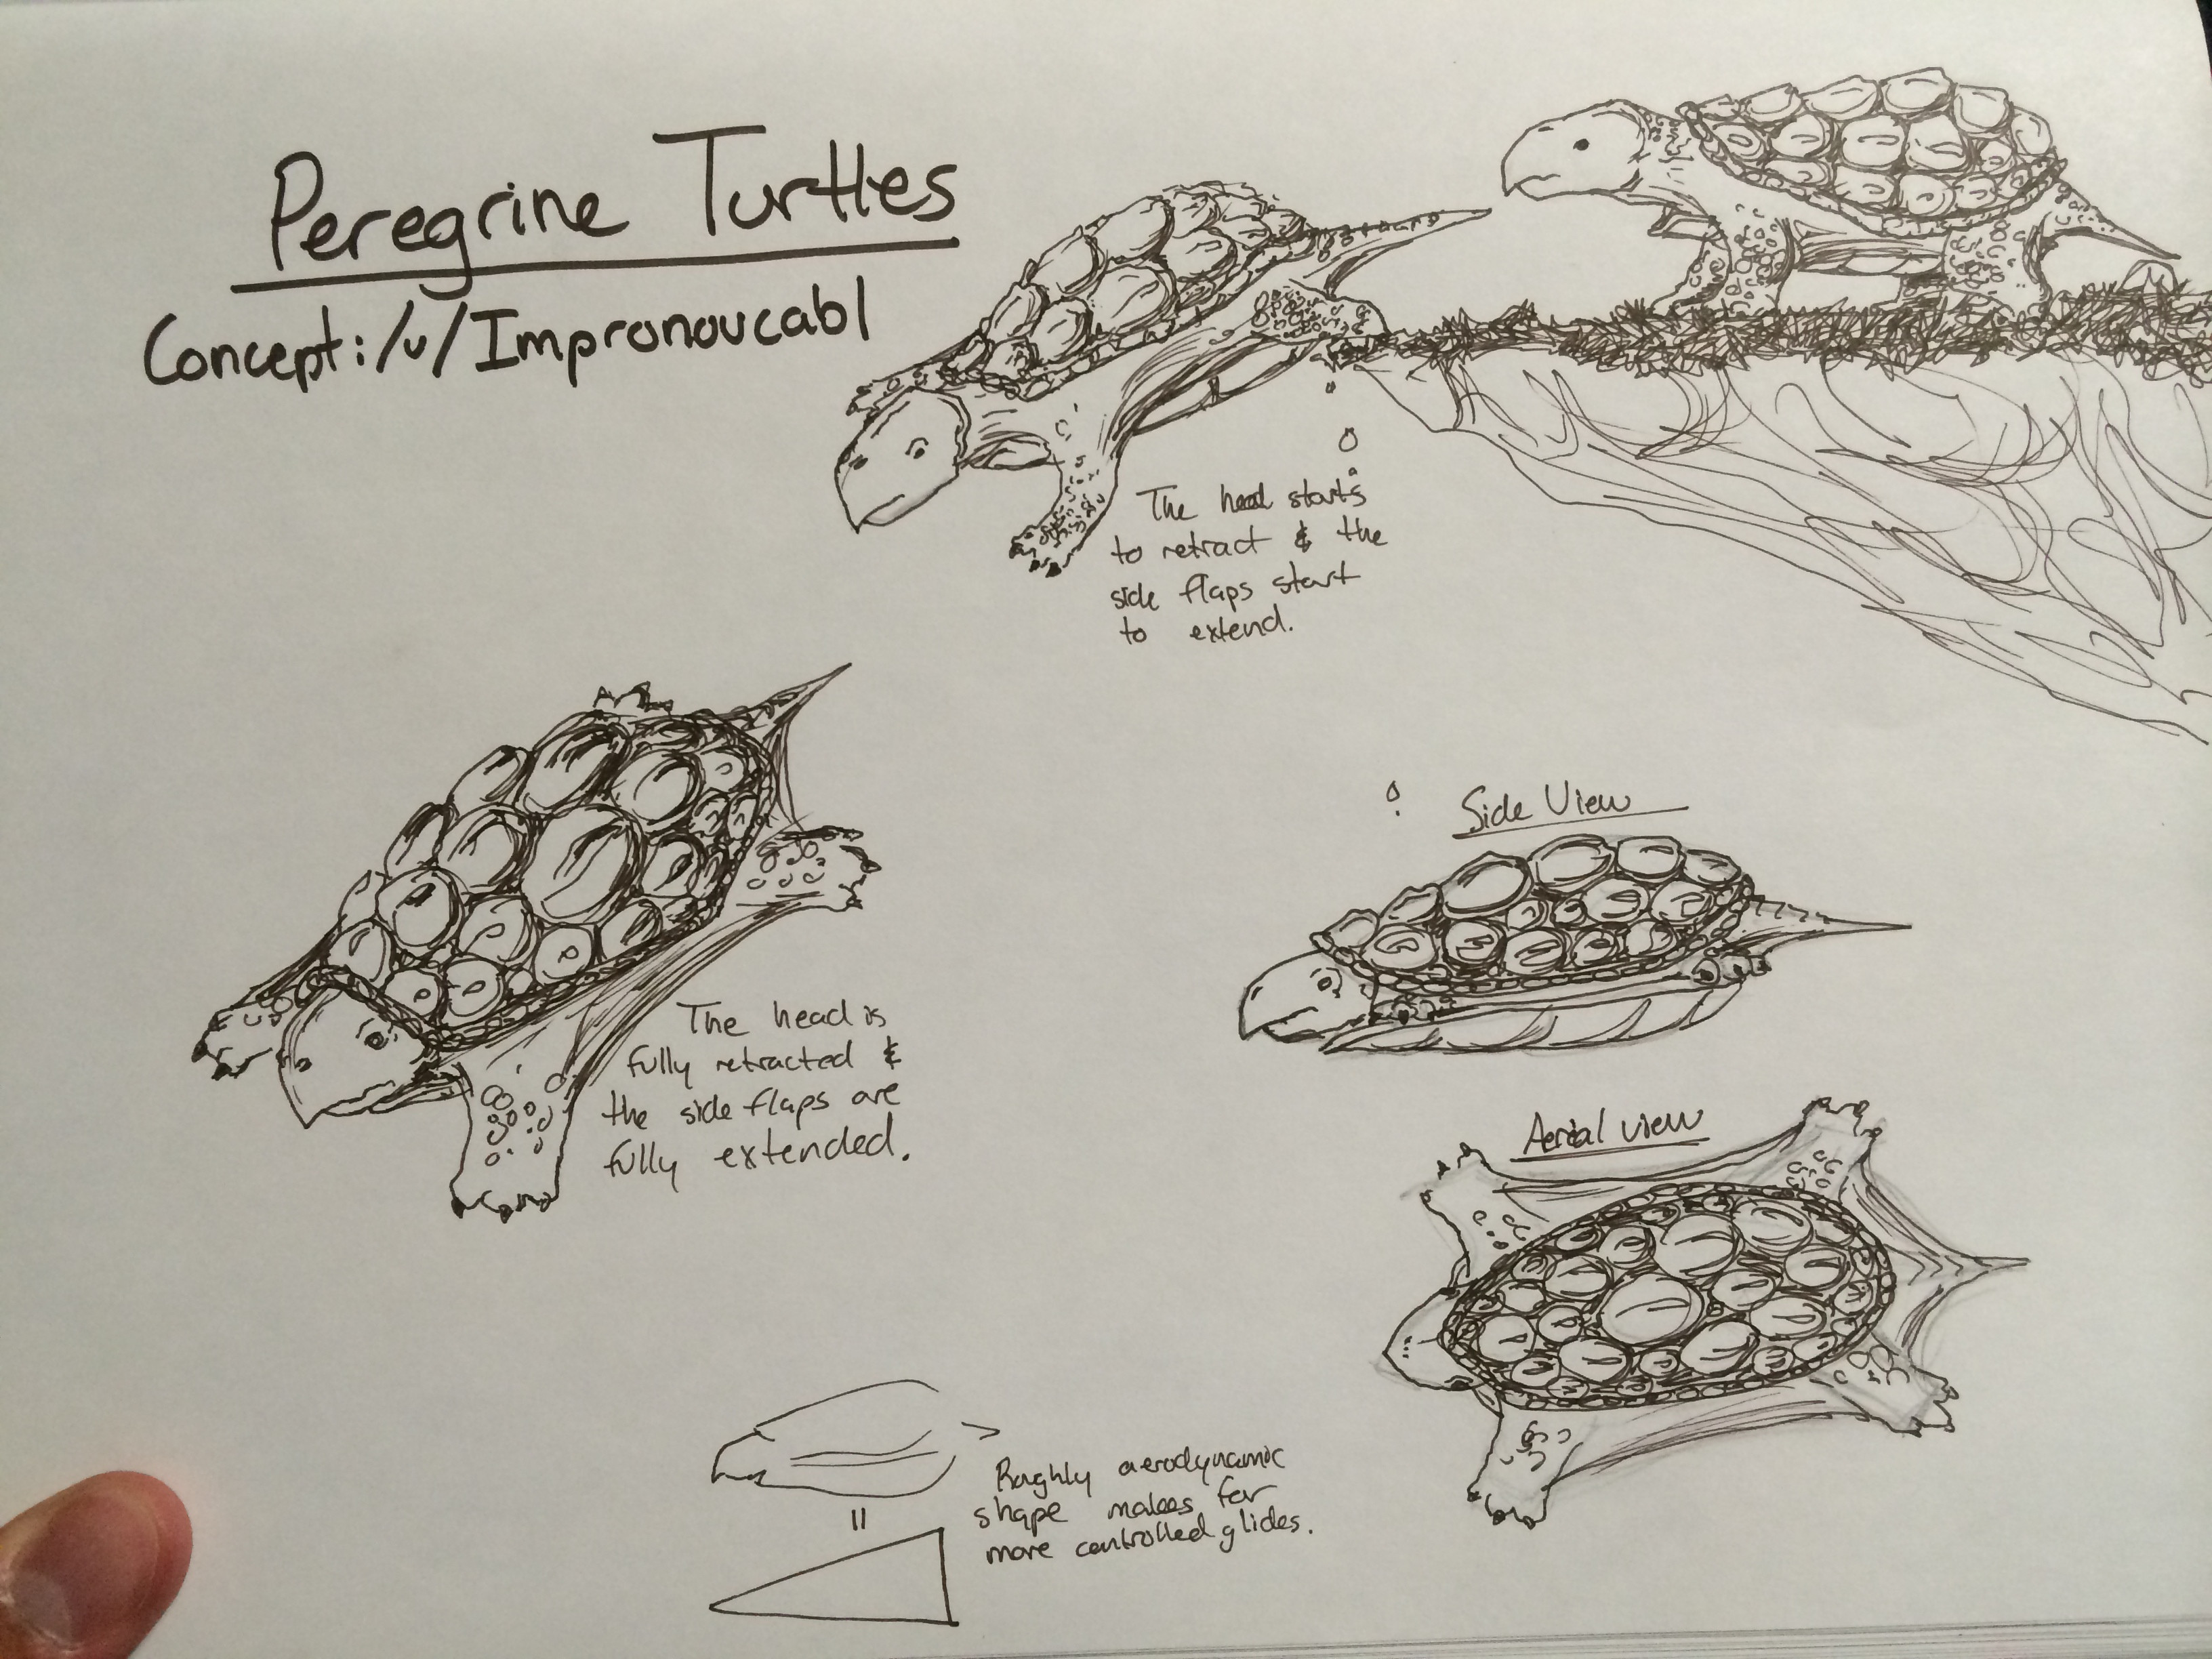 Peregrine turtles by tanmanvincent